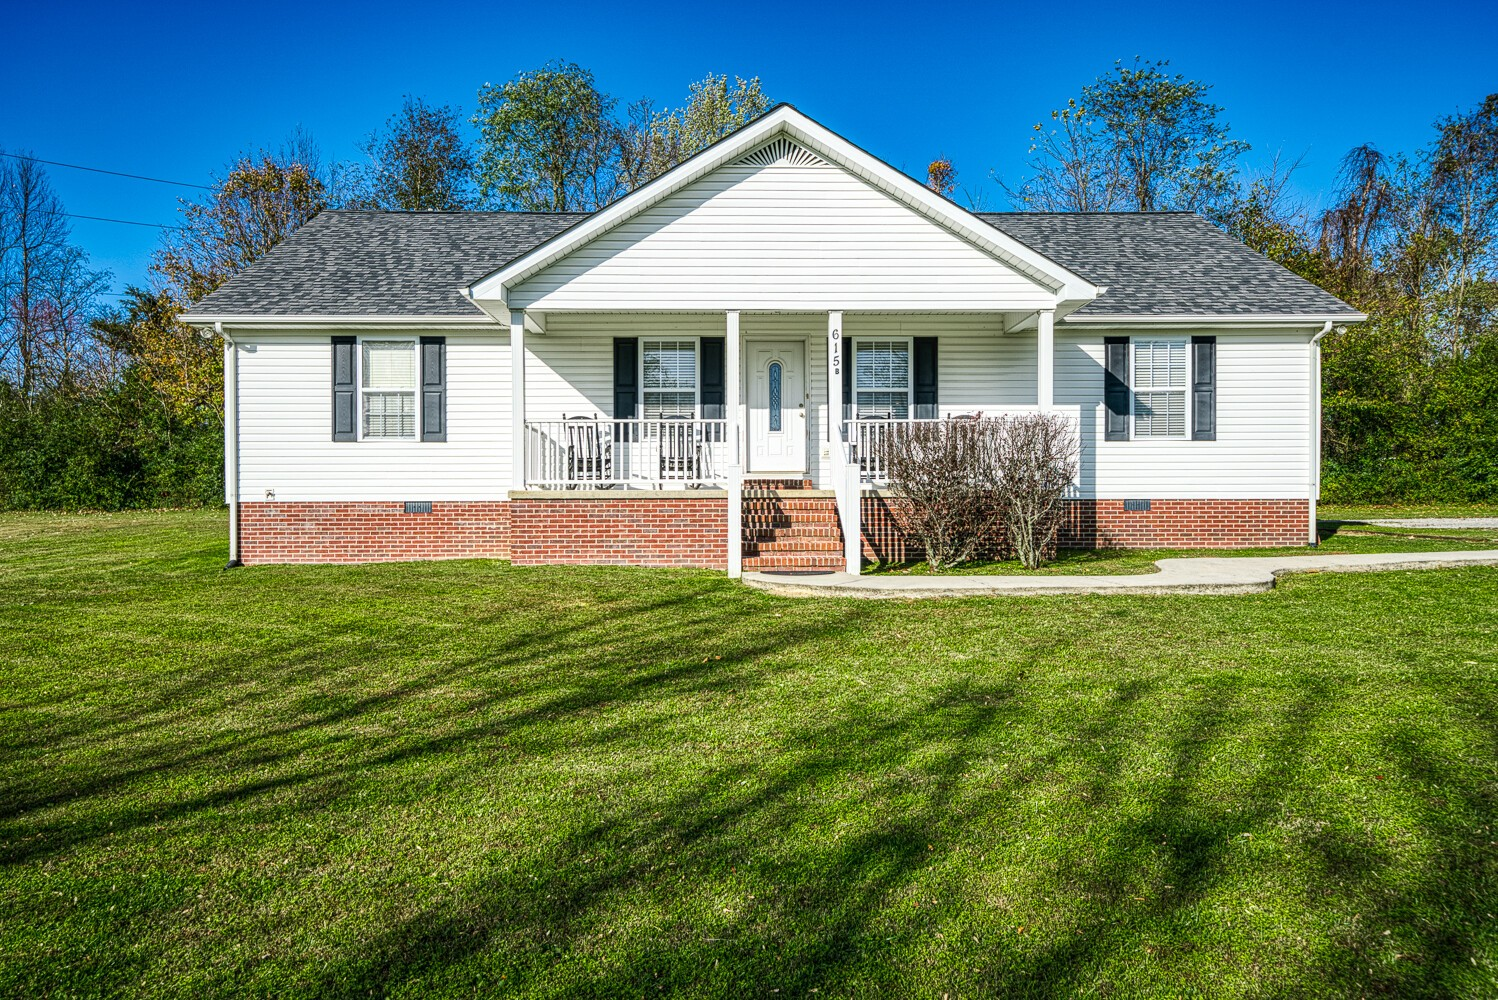 615 N Holly St Property Photo - Monterey, TN real estate listing